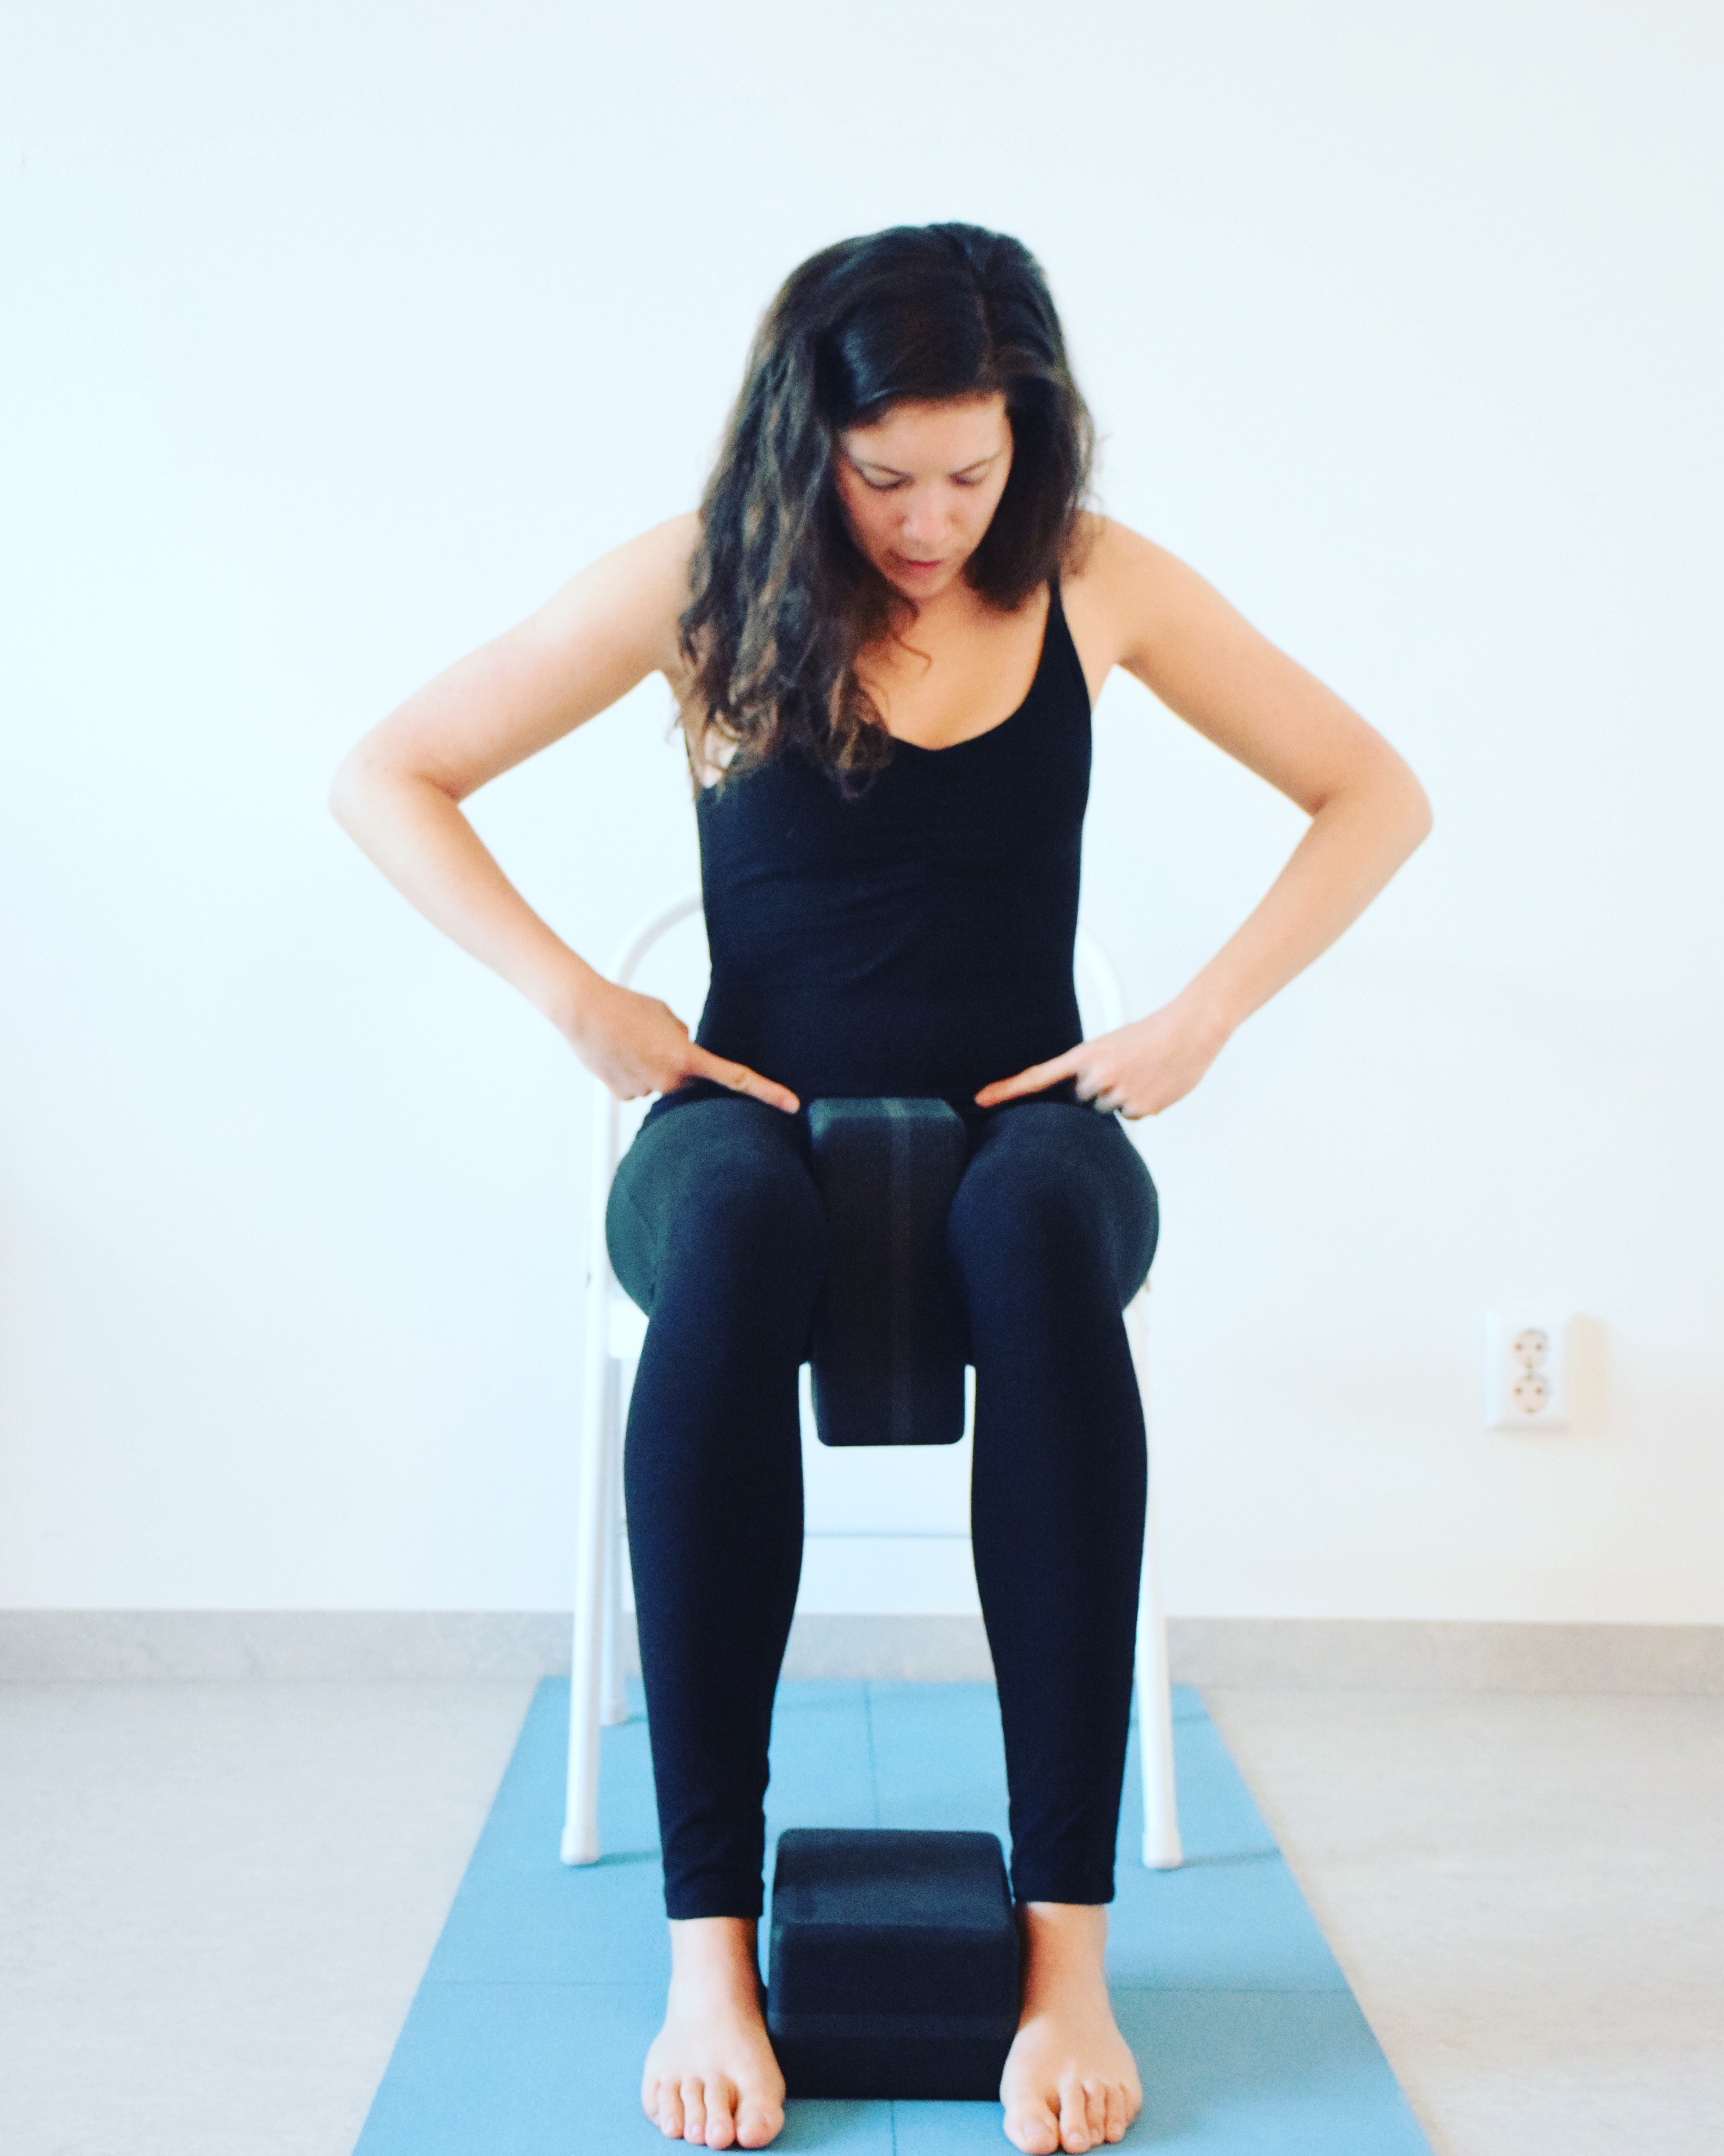 How to start cultivating symmetry awareness from the feet up